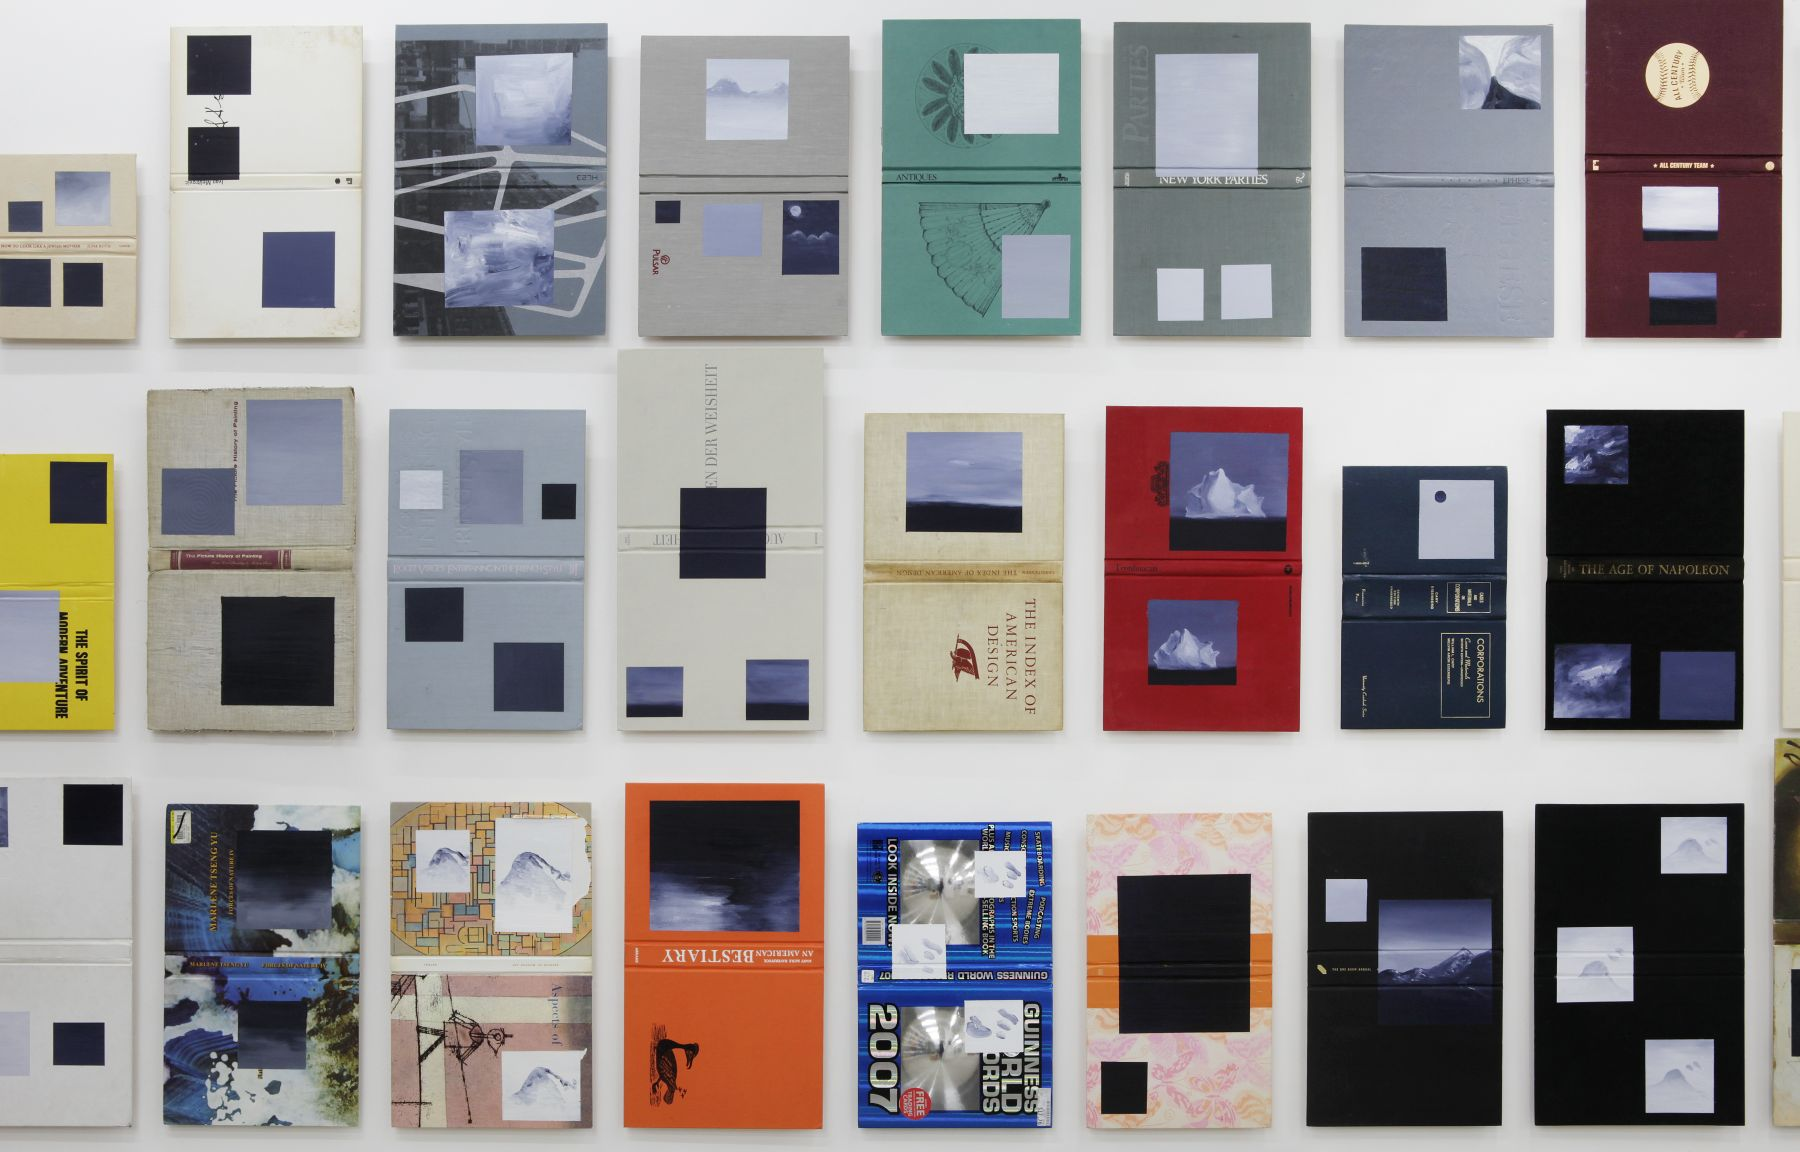 Volumes - inncompleteset, 2012 (detail), Oil on fabric, paper and cardboard